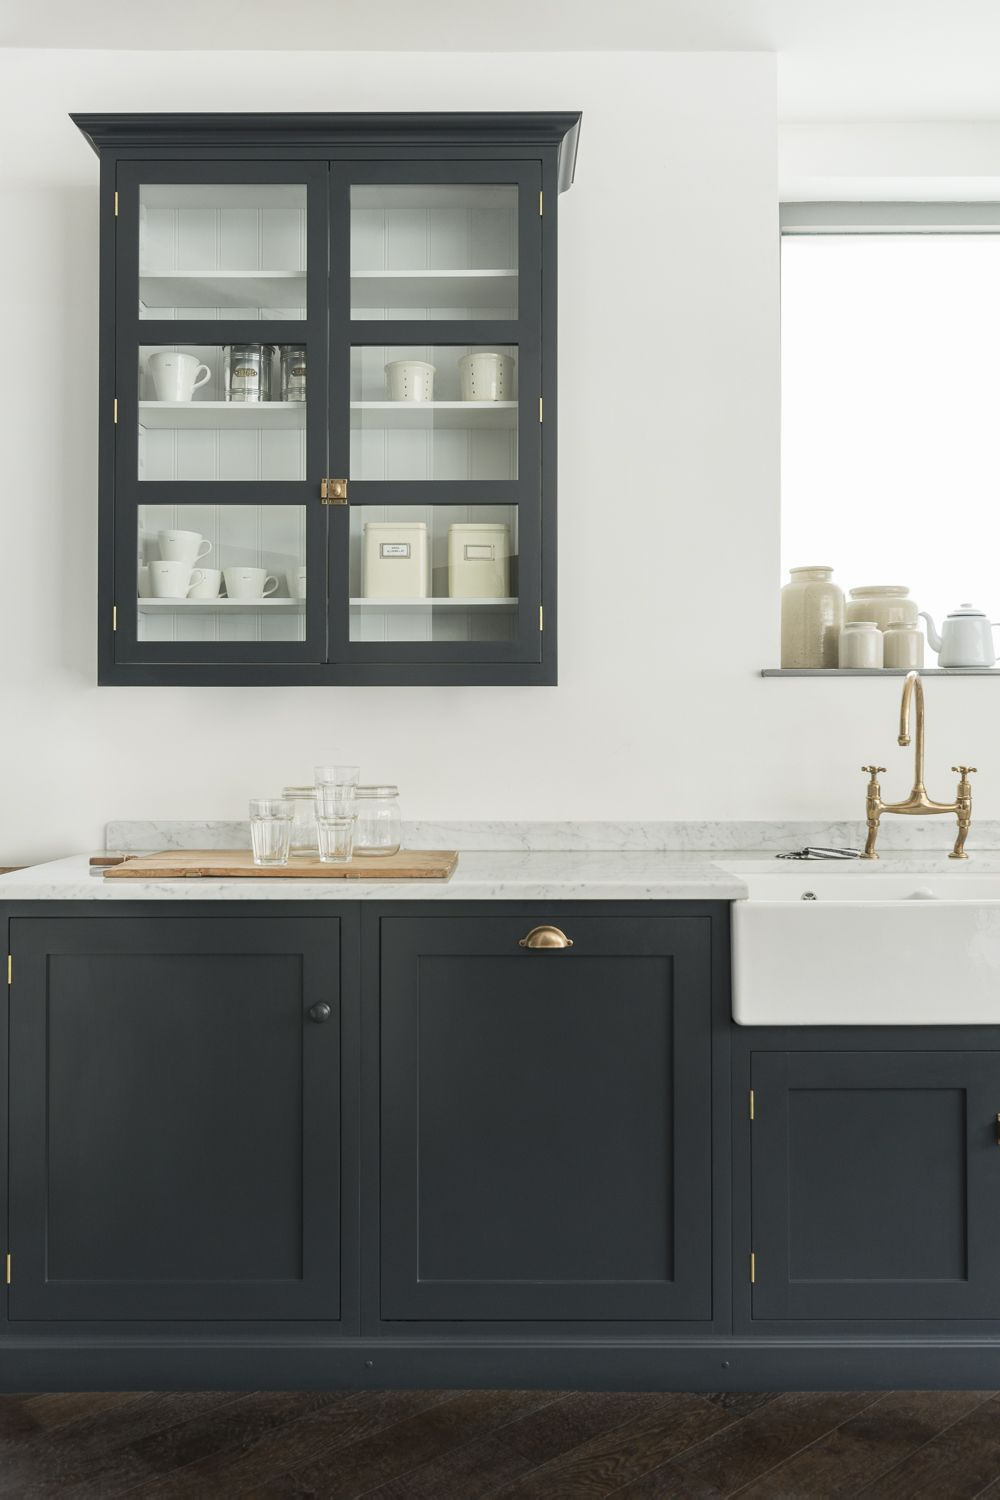 Devol S Bespoke Cabinet For Tall Period Kitchens From Wall Kitchen Cabinets